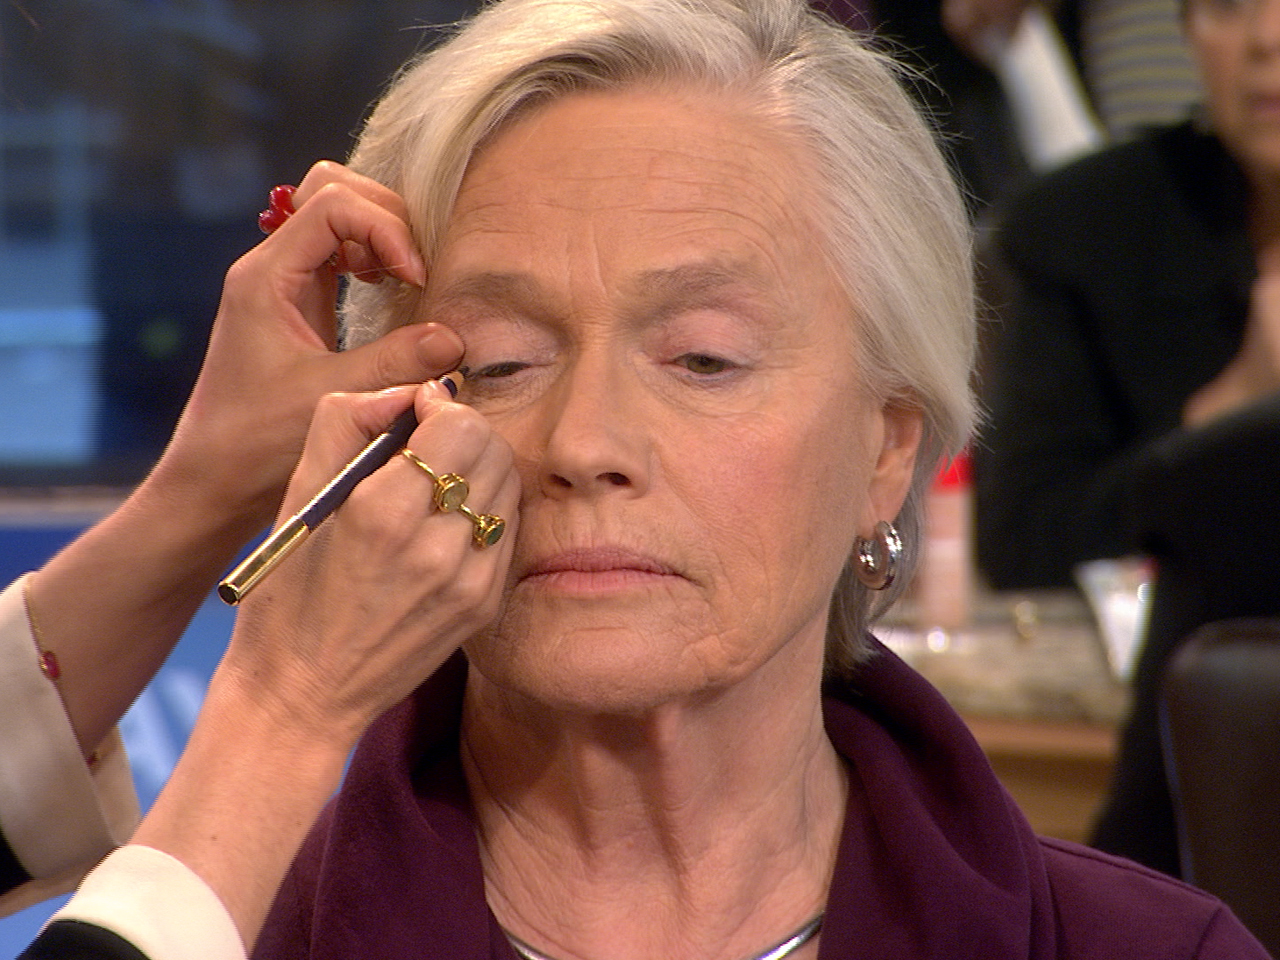 glammas makeup tutorial for seniors goes viral todaycom